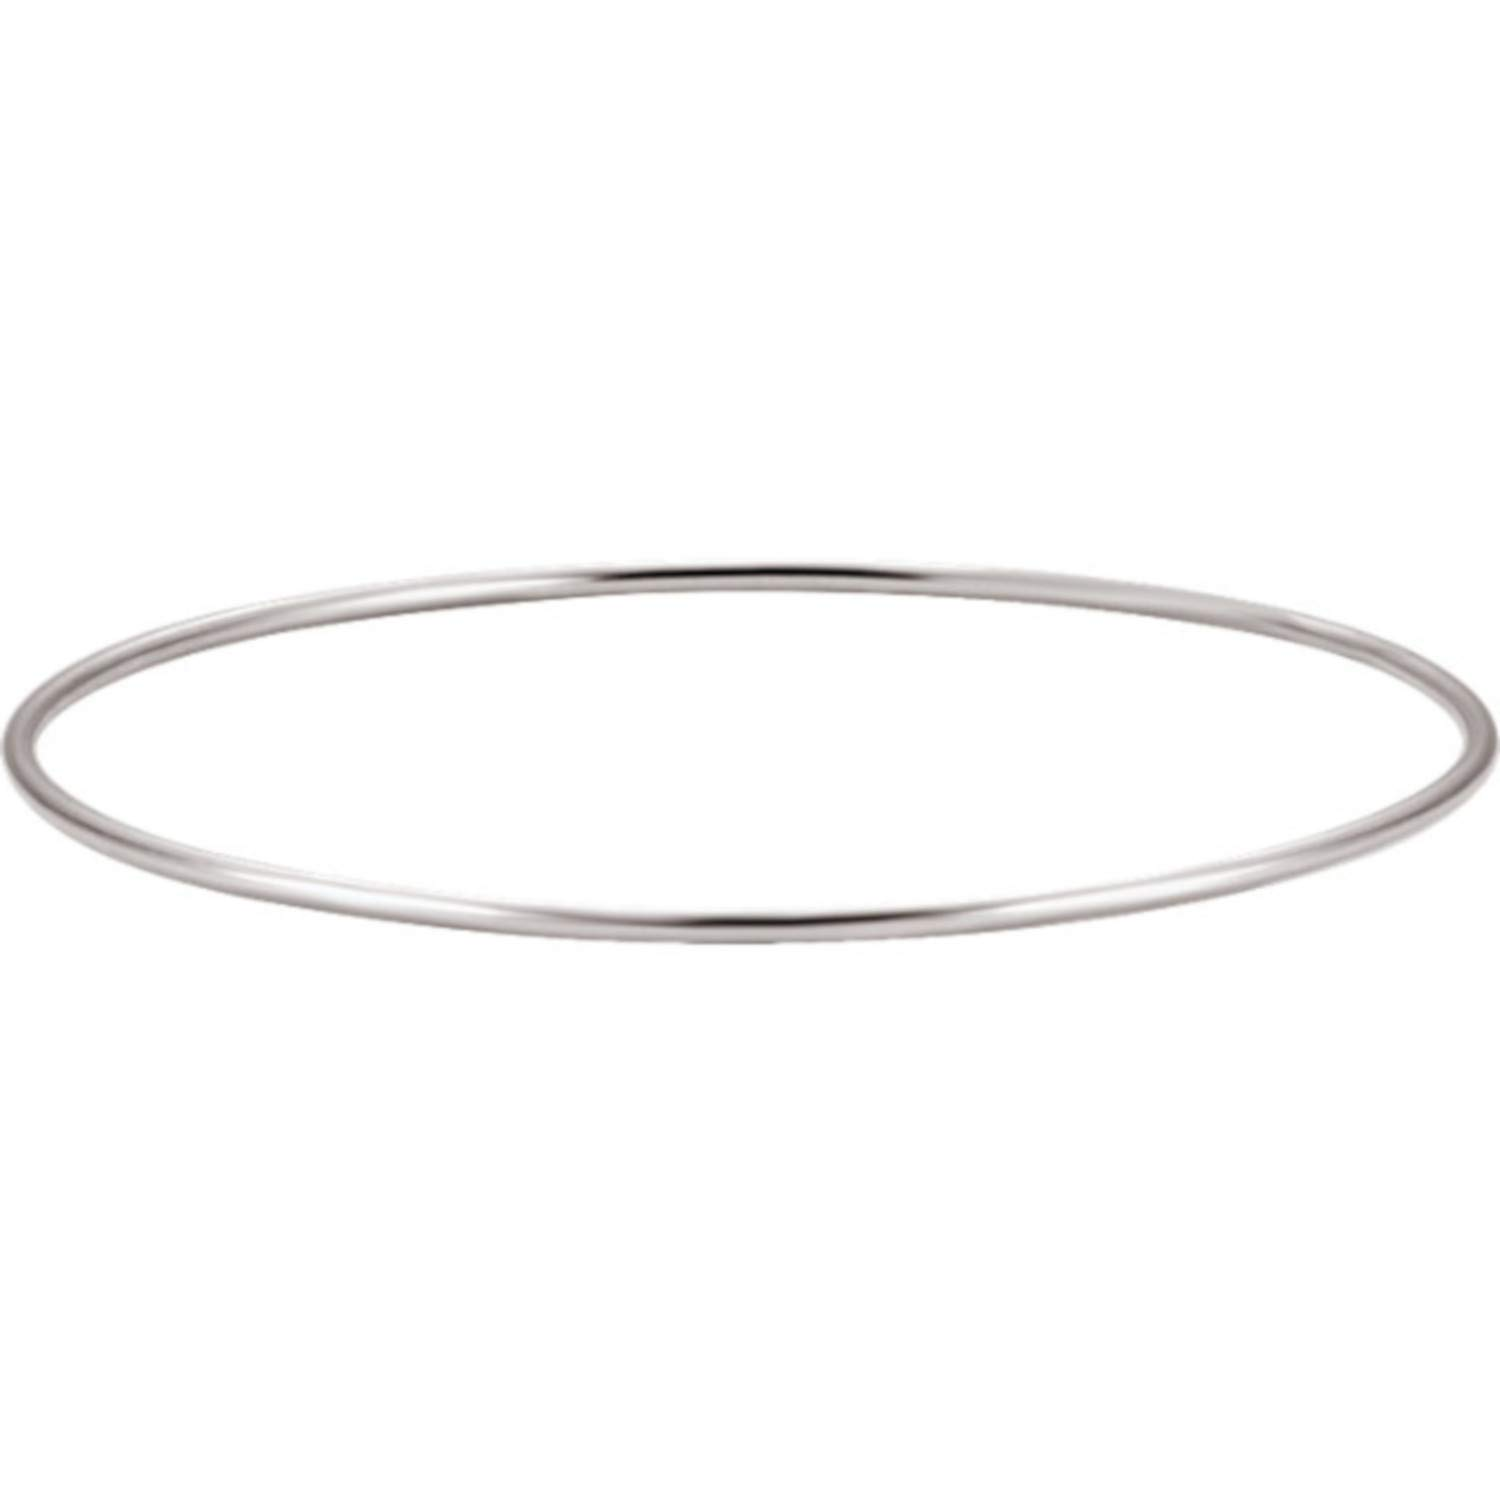 EVHjewelry.com 18k GP 1.5mm Bangle Bracelet Size 8